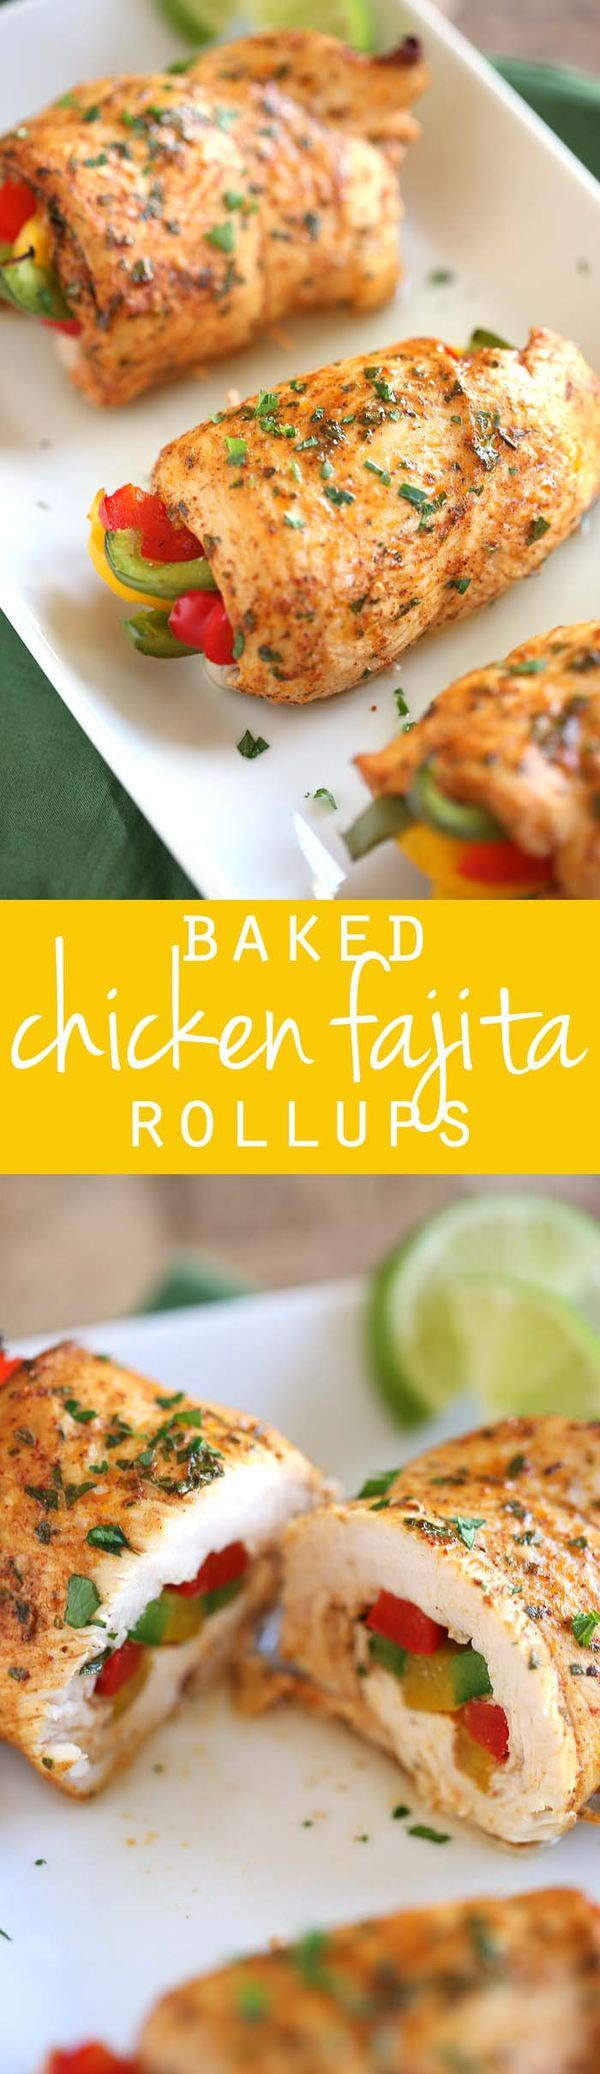 Best 25 clean eating ideas on pinterest clean eating dinner chicken fajita roll ups forumfinder